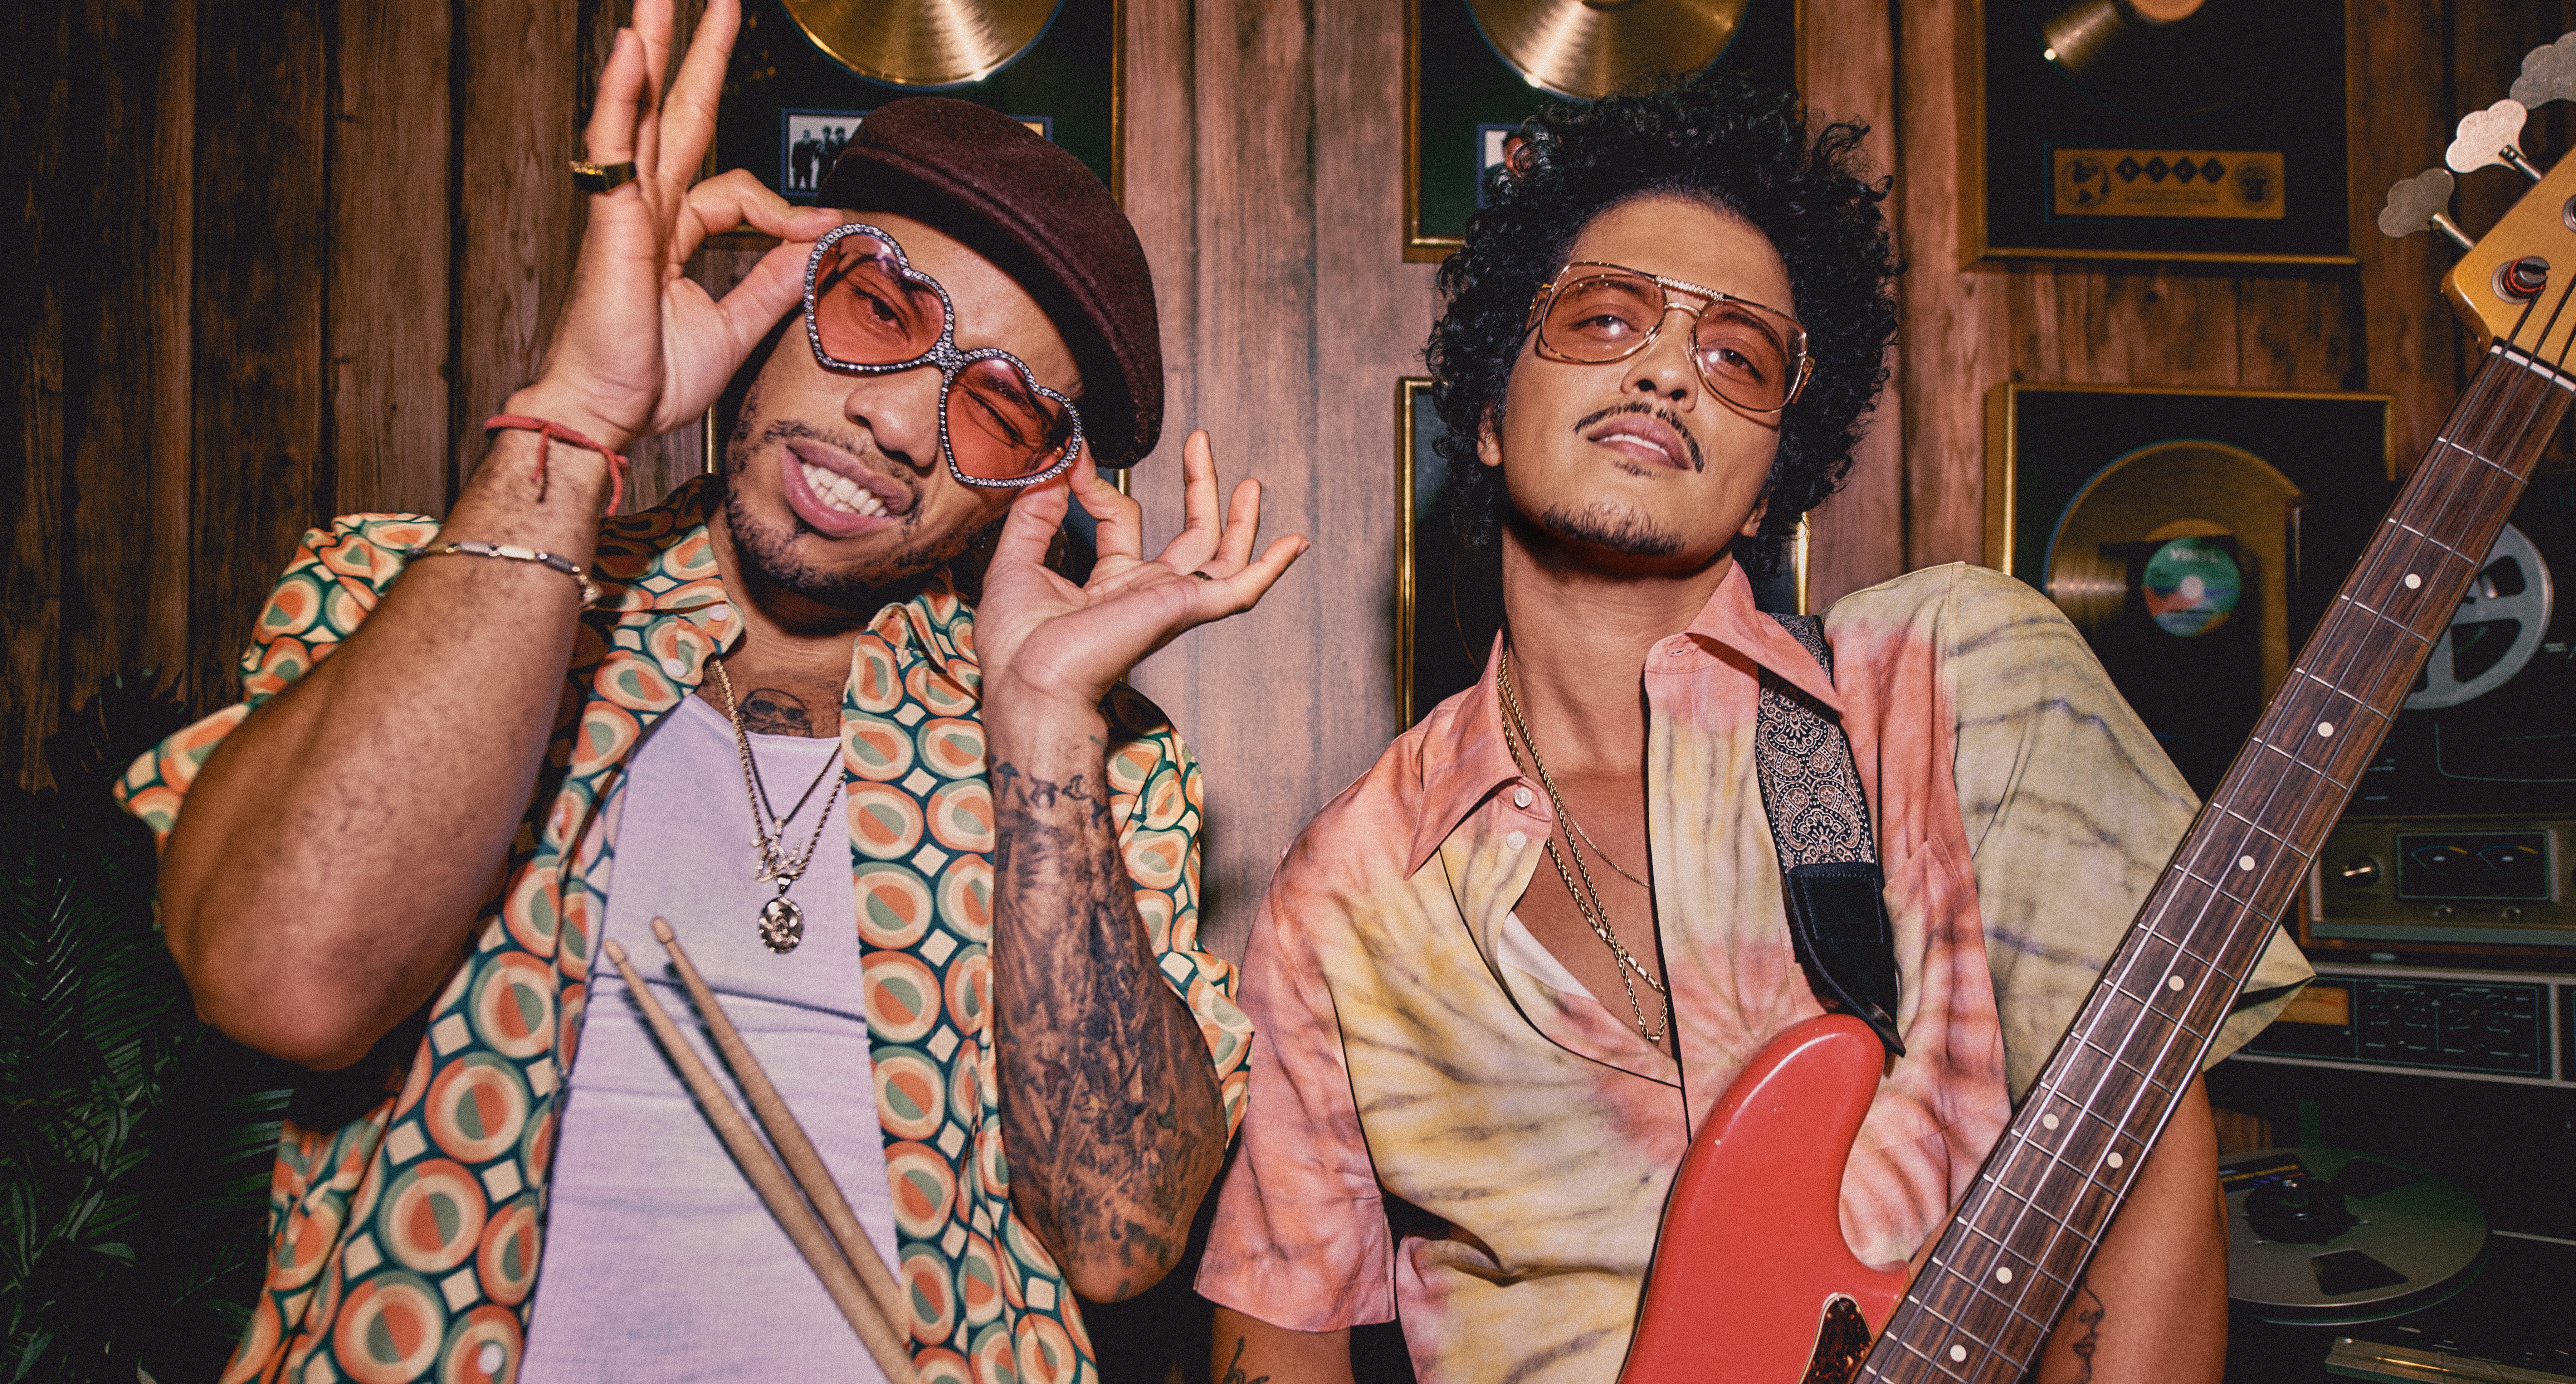 Bruno Mars and Anderson Paak Announce Album Release Date for 'An Evening With Silk Sonic'